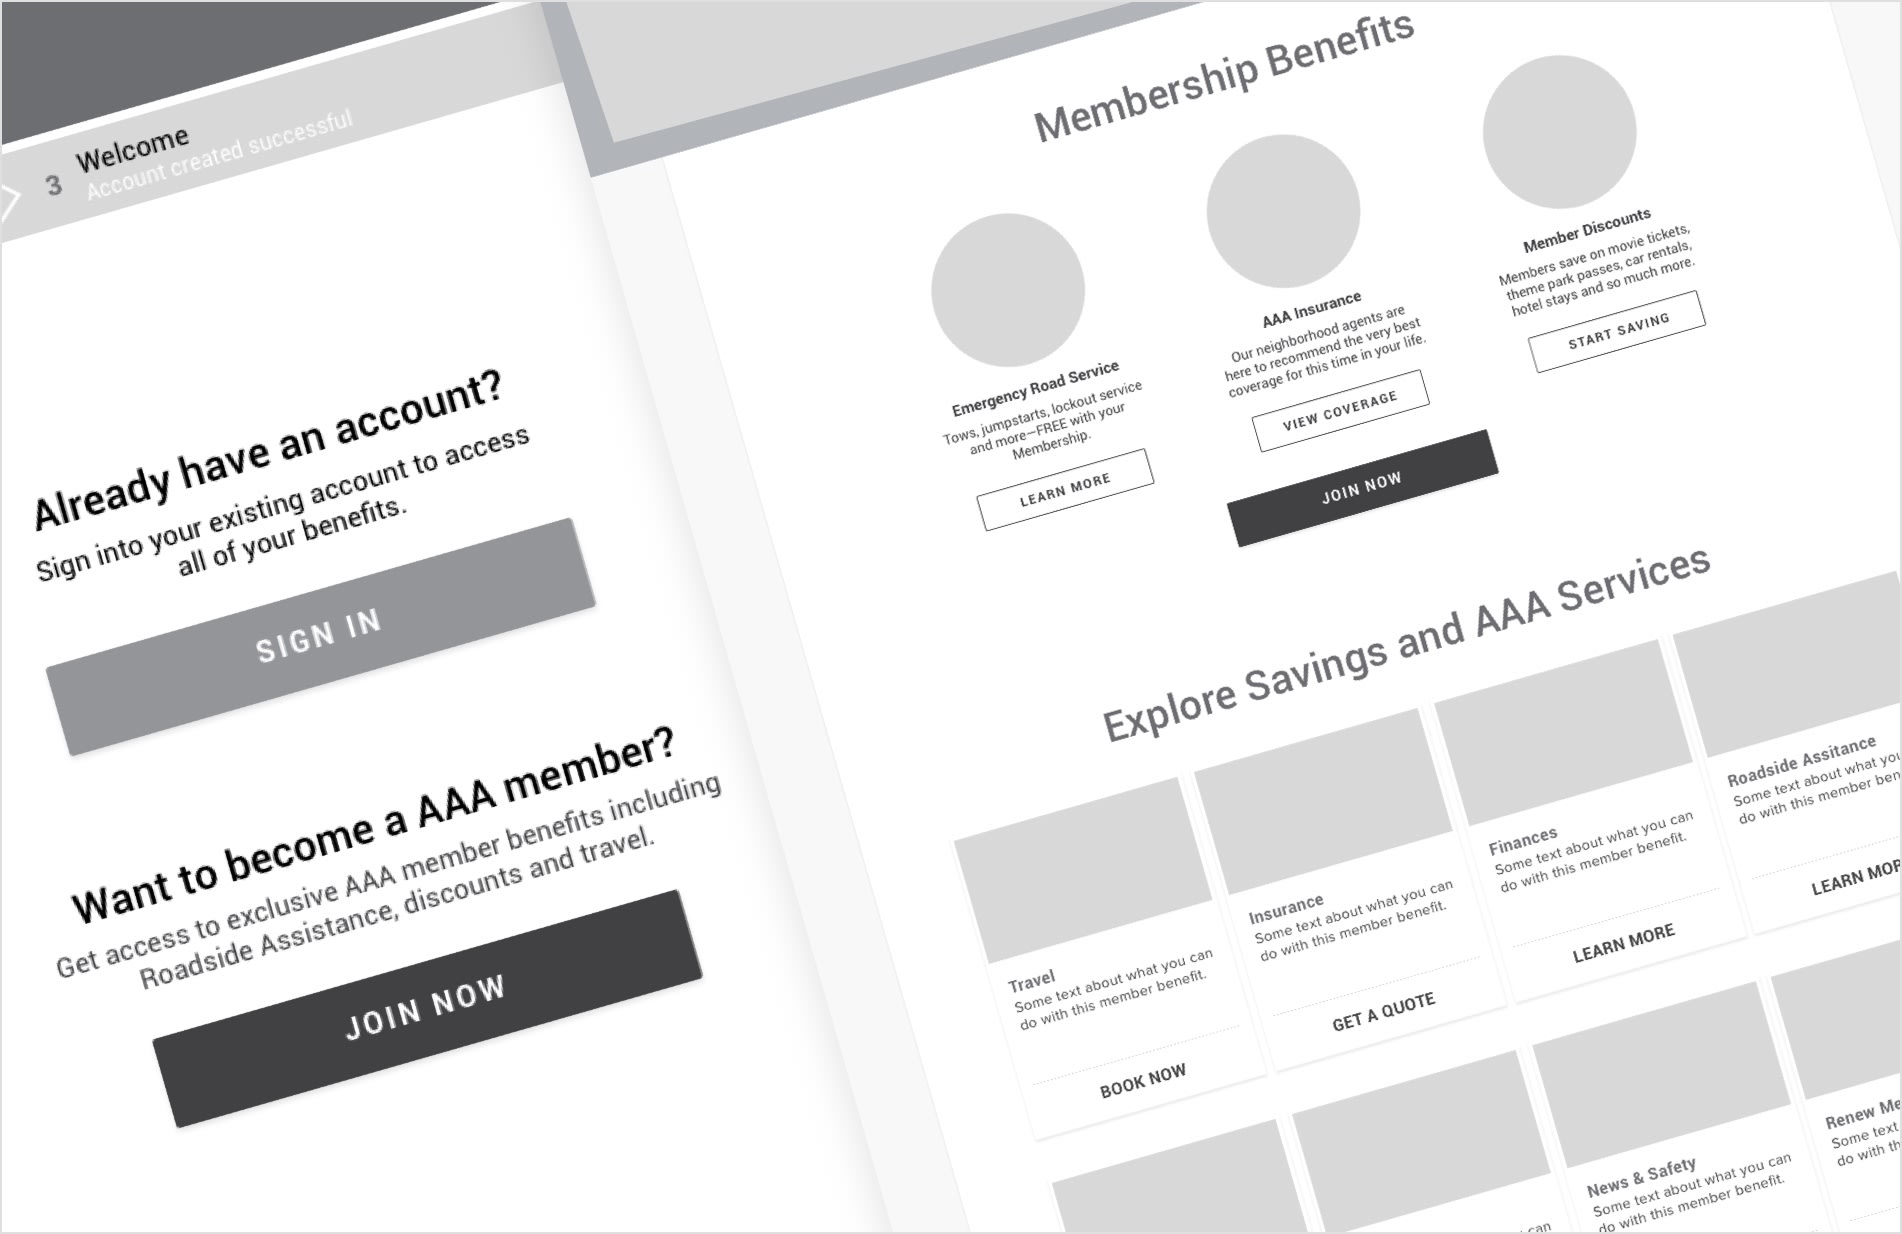 Black and white wireframes showing AAA account and membership information.